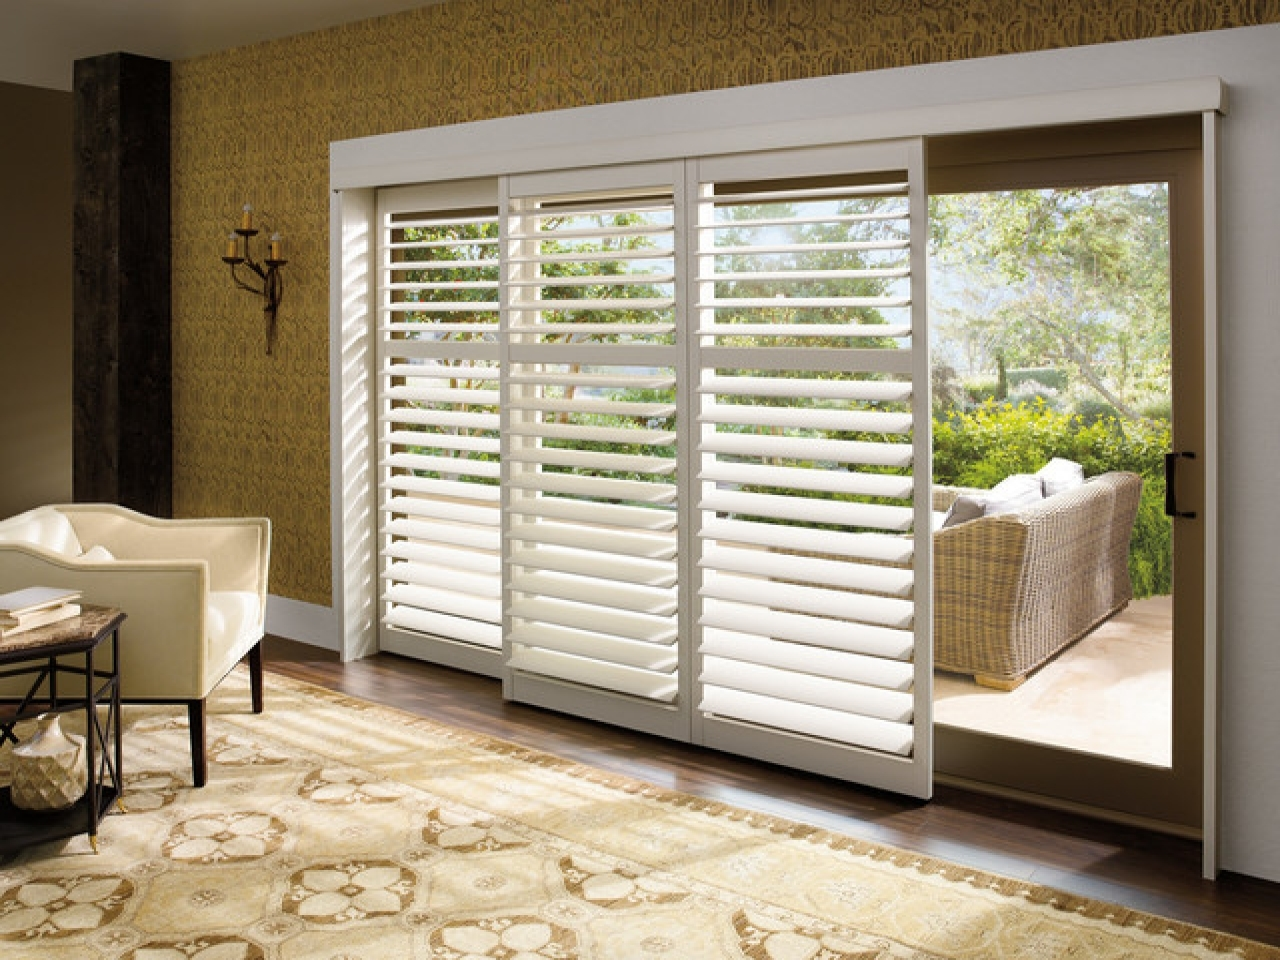 Window Coverings For Large Sliding Glass Doorswindow treatments for sliding glass doors ideas tips